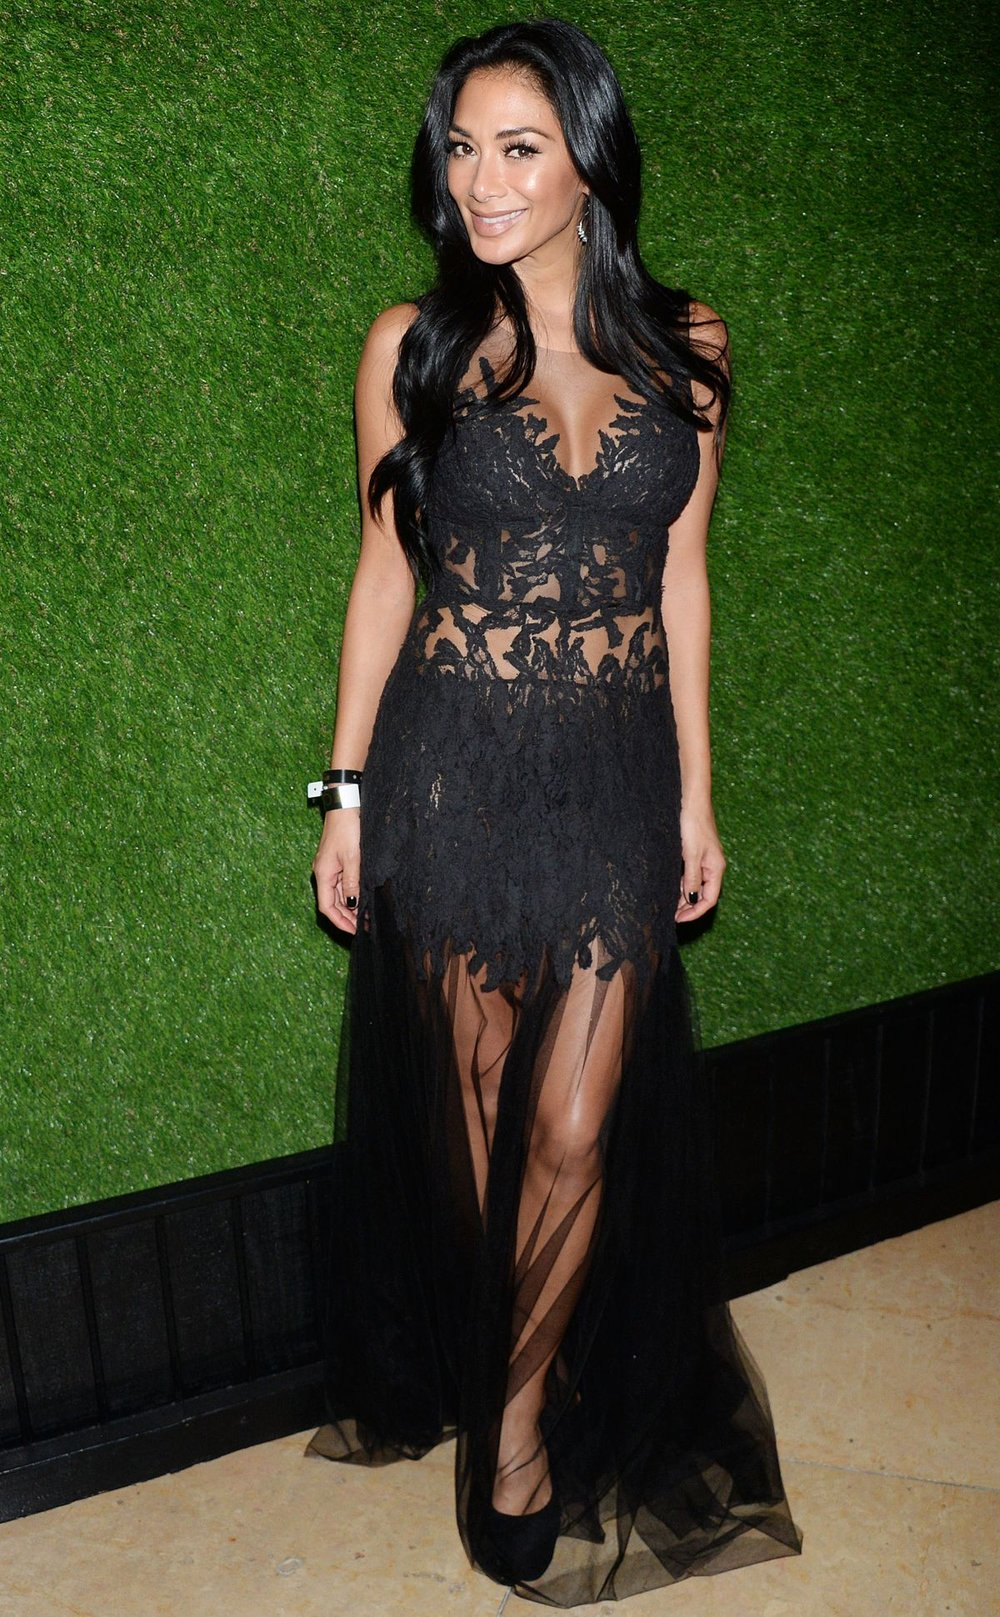 nicole-scherzinger-at-golden-globe-after-party-in-los-angeles-01-07-2018-1.jpg